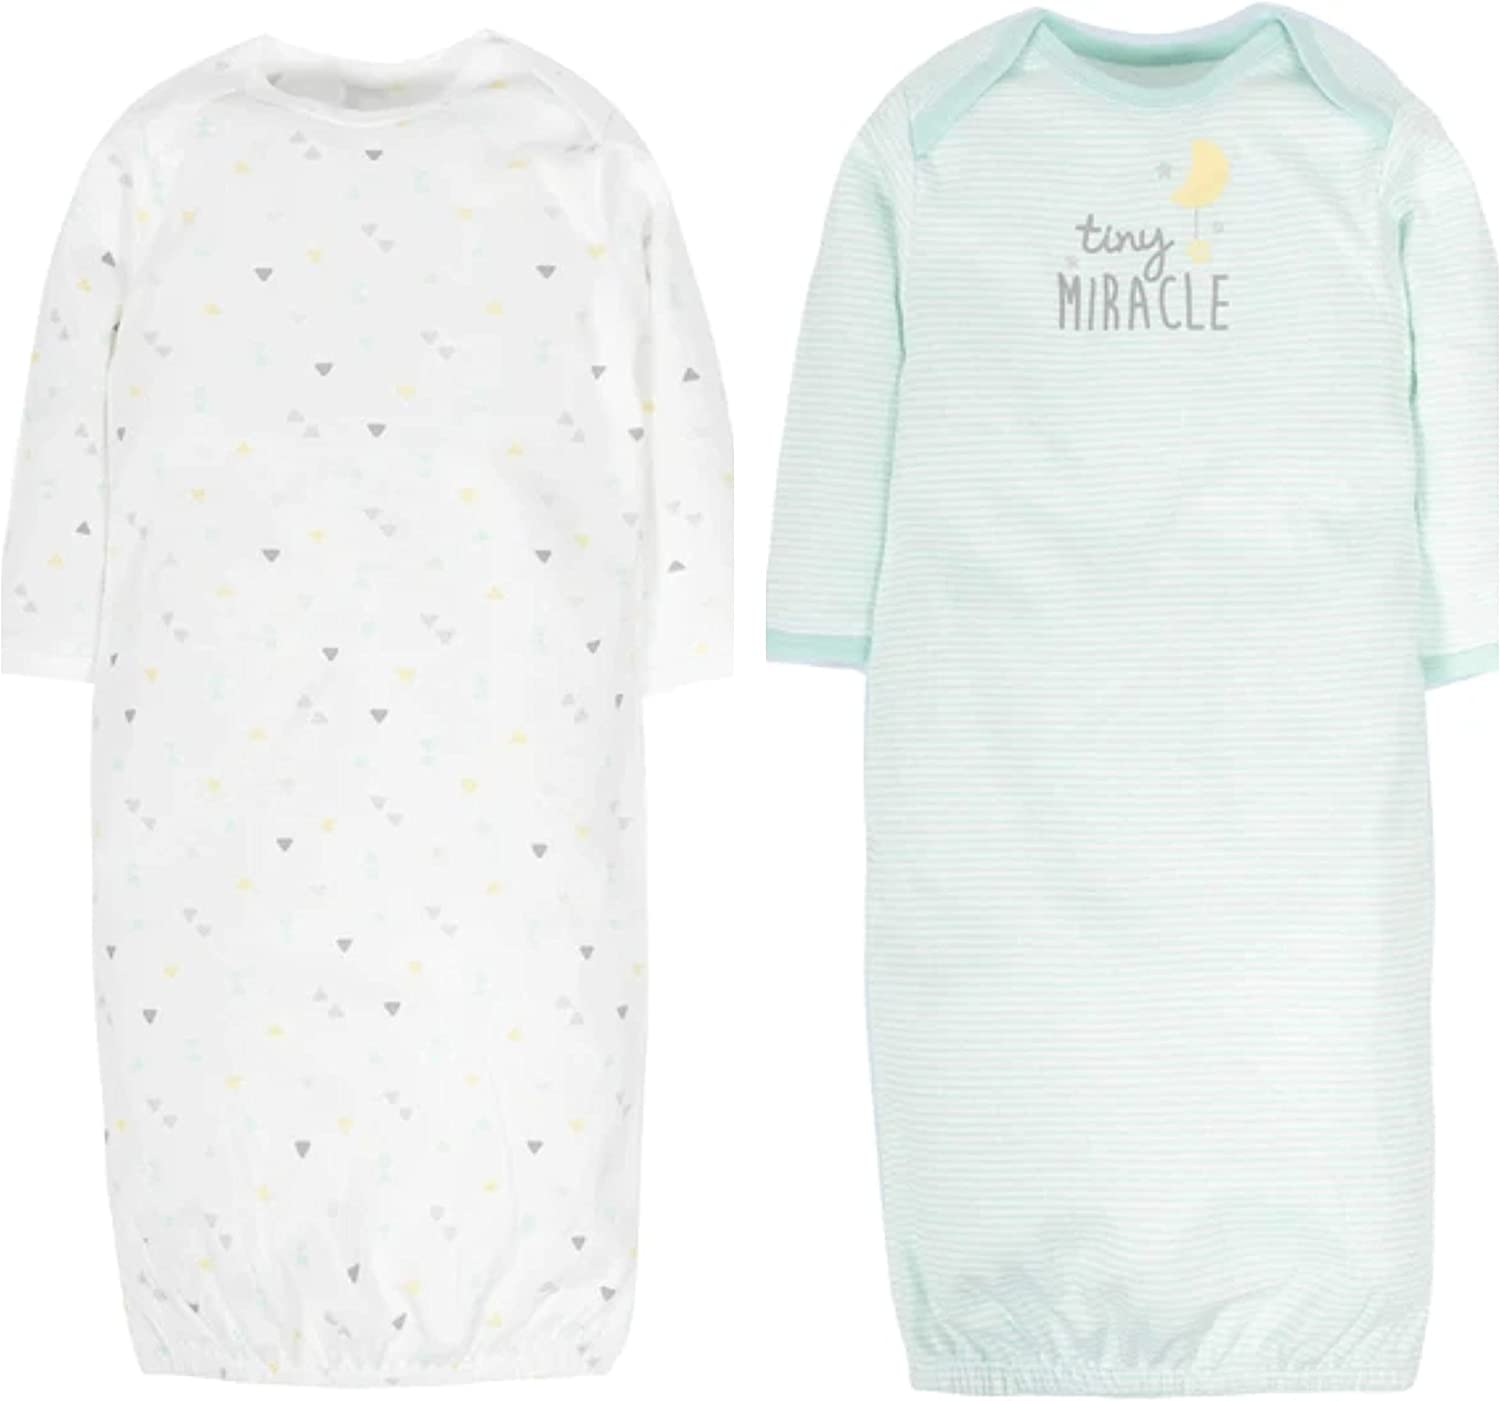 Gerber Baby Neutral 2 Pack Gown 0-6 Months 67% OFF of fixed price depot Tiny Teal Miracle